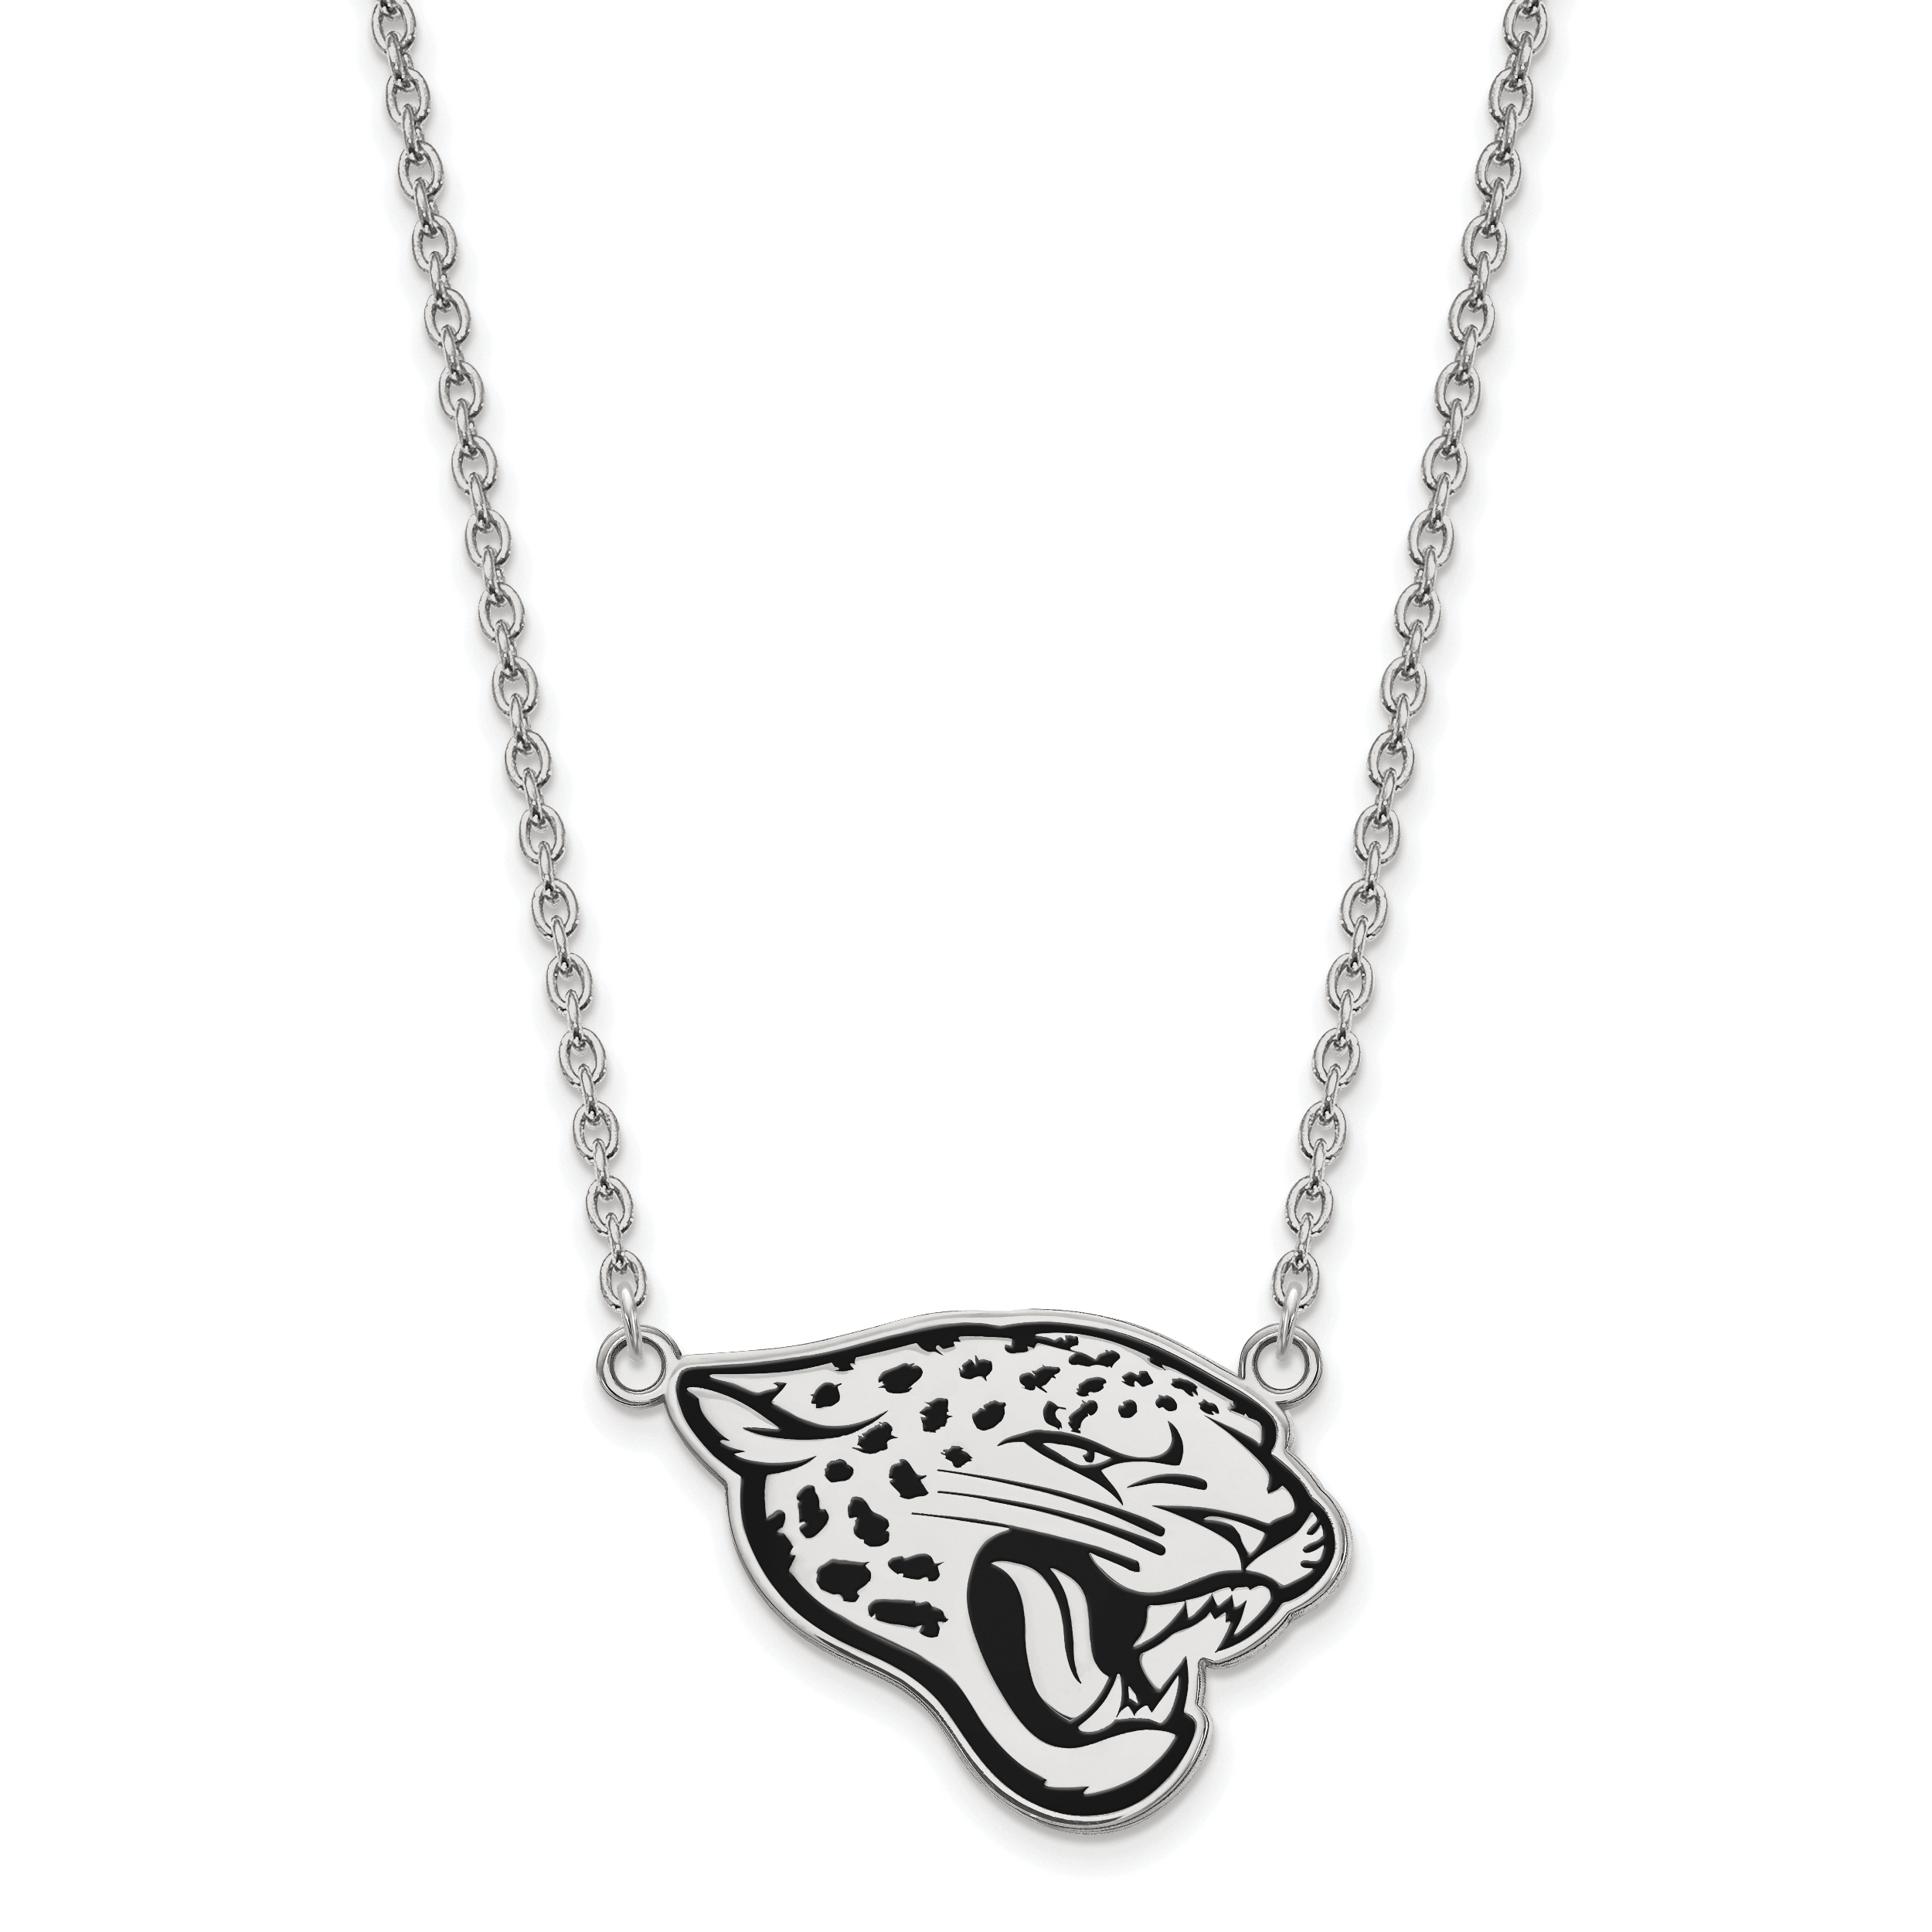 Sterling Silver Rhodium Plated Jacksonville Jaguars Small Pendant w//Necklace 18 in Length Sterling Silver